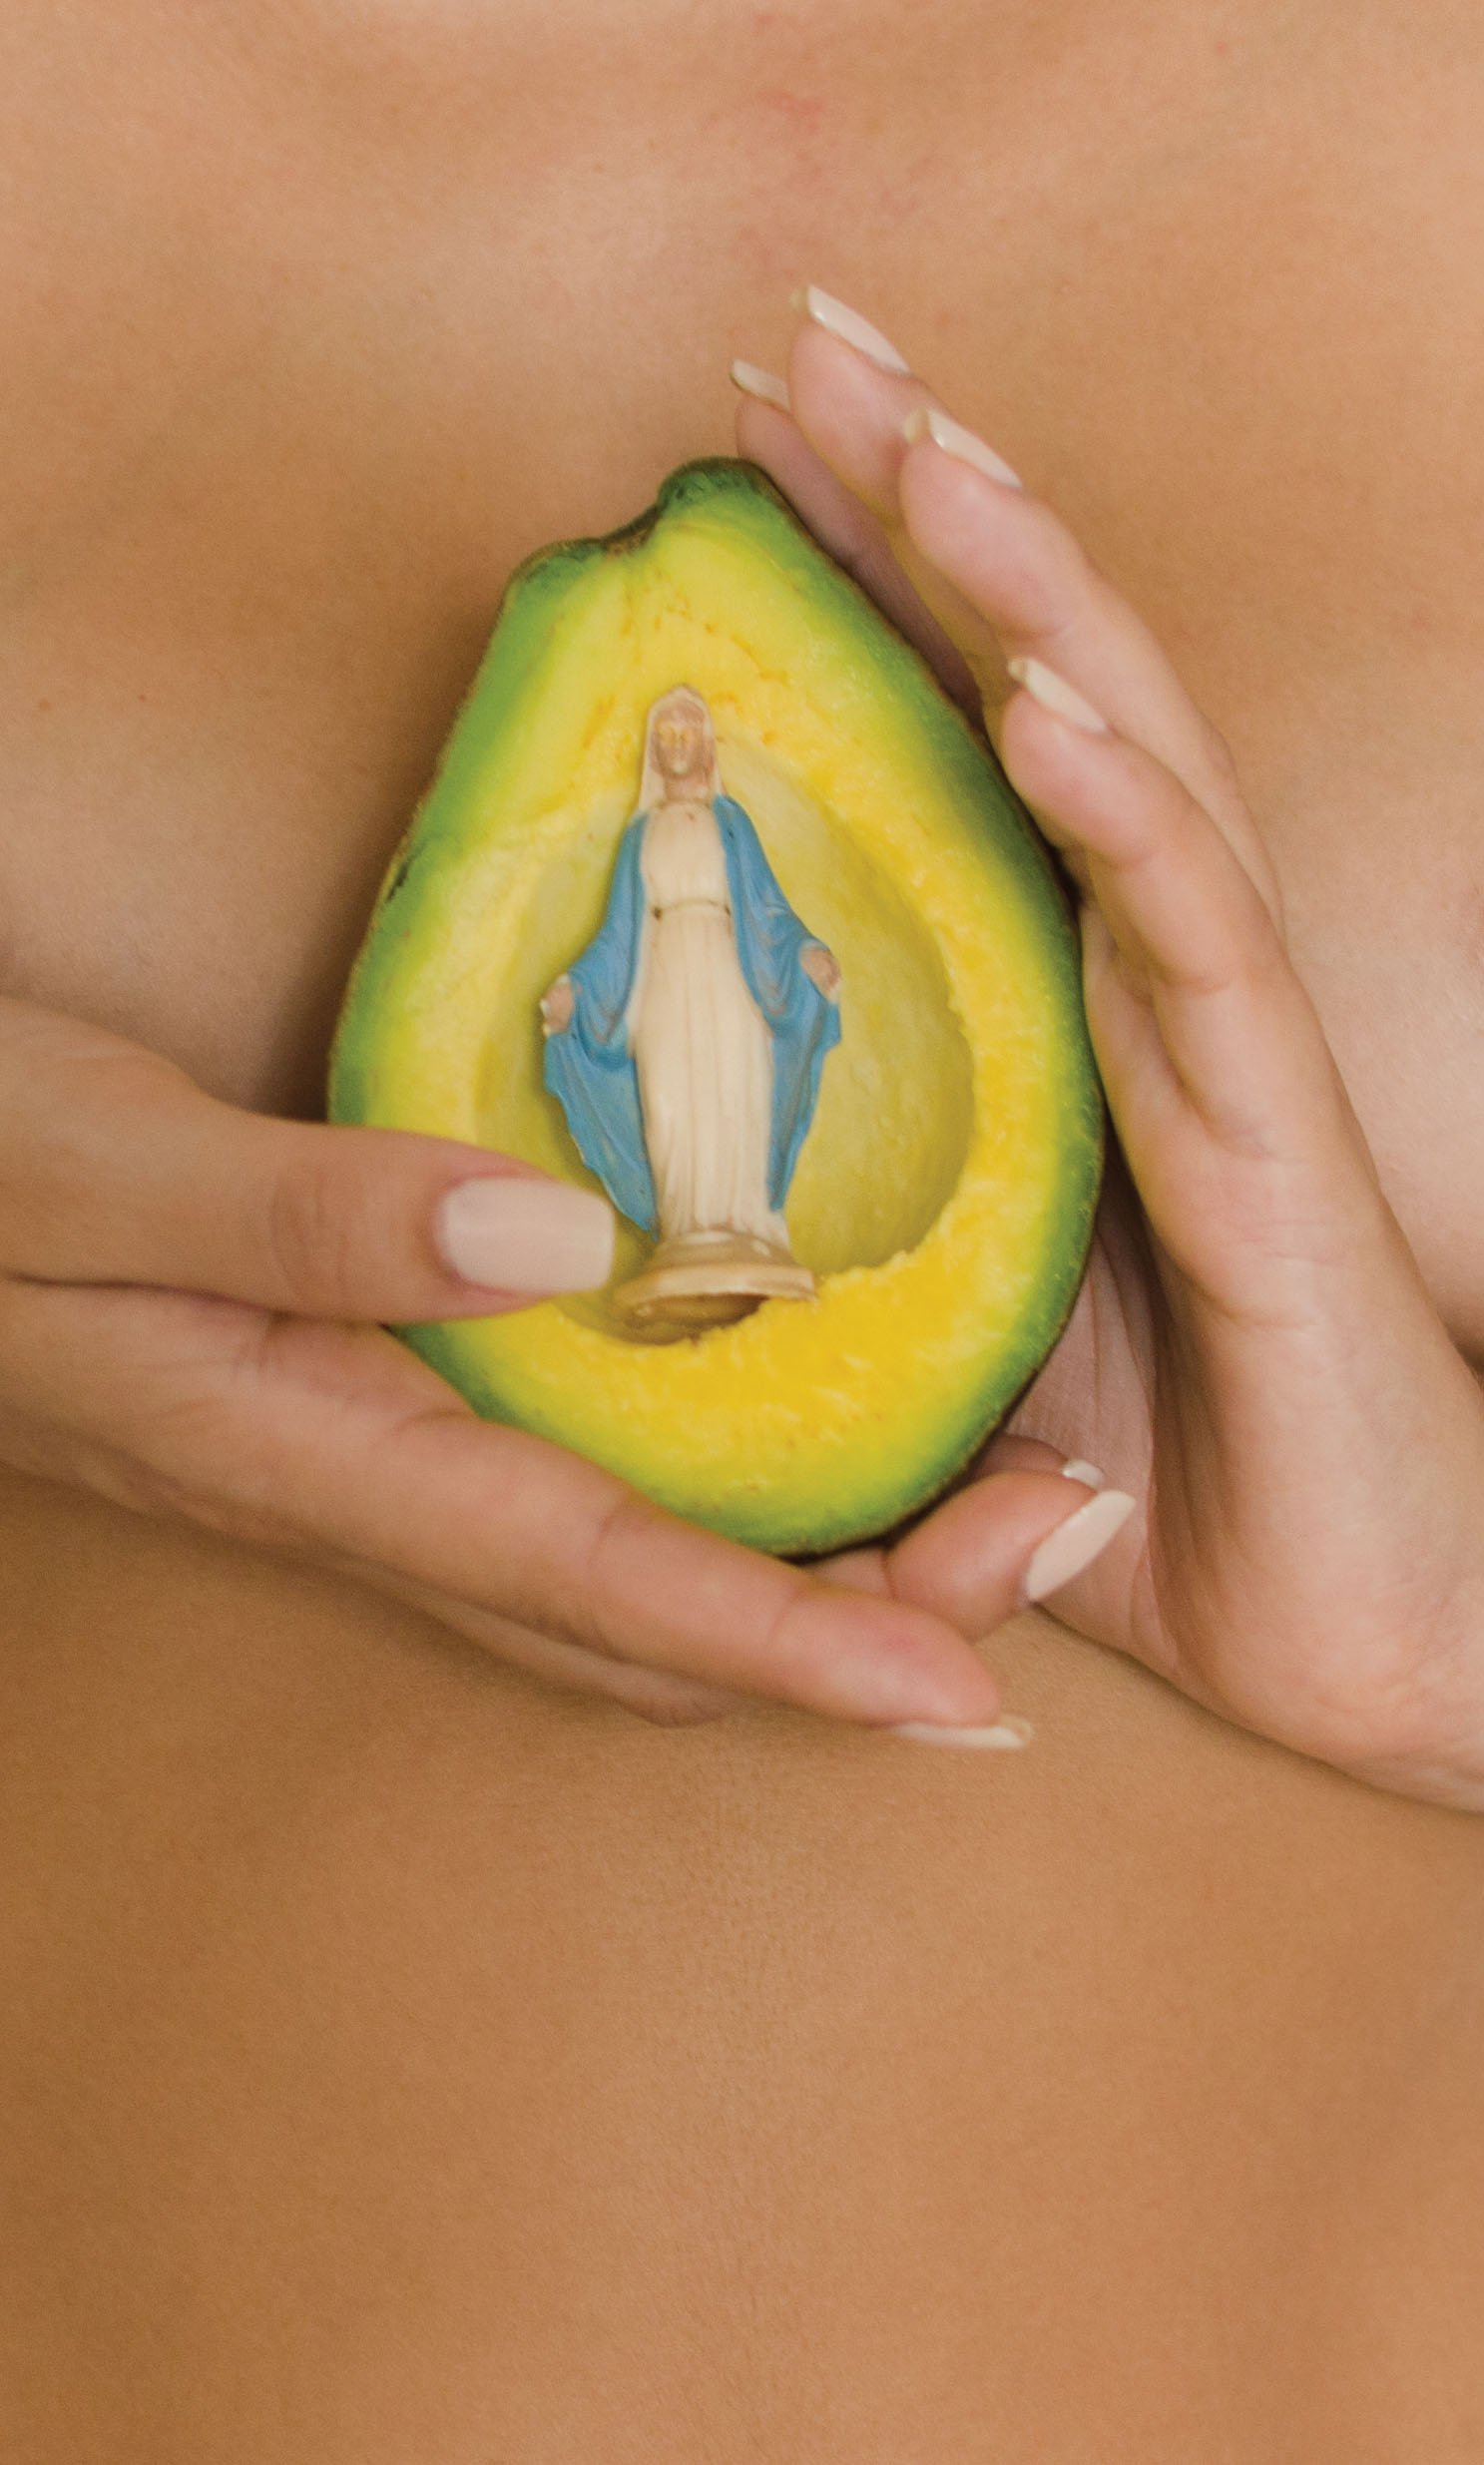 Closeup image of a woman's hands holding, between her breasts, a scooped-out avocado with a Virgin Mary figurine inside.